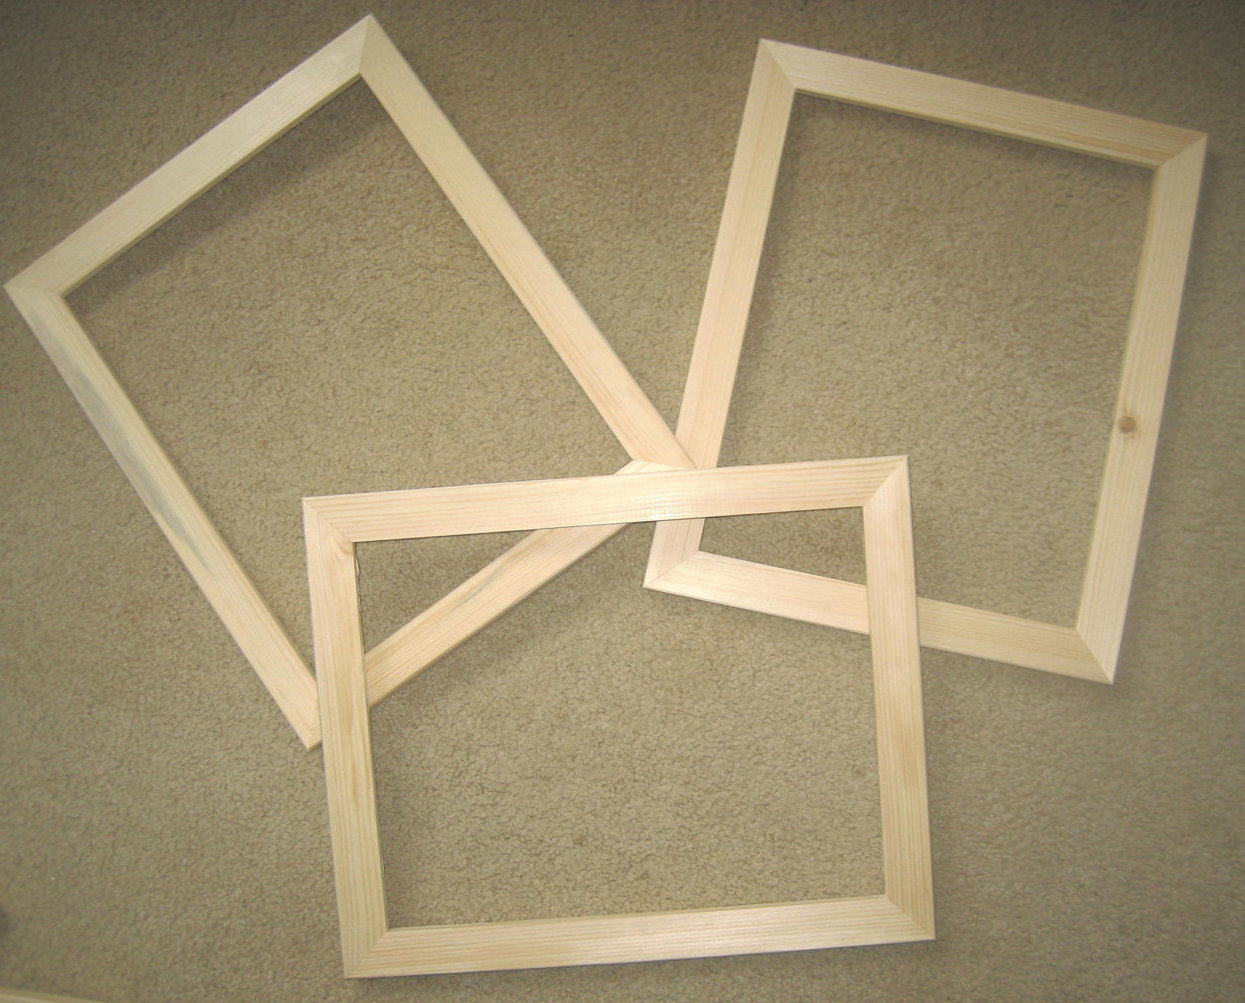 wooden picture frames cheap images craft decoration ideas wood picture frames cheap gallery craft decoration ideas - Wood Frames Cheap